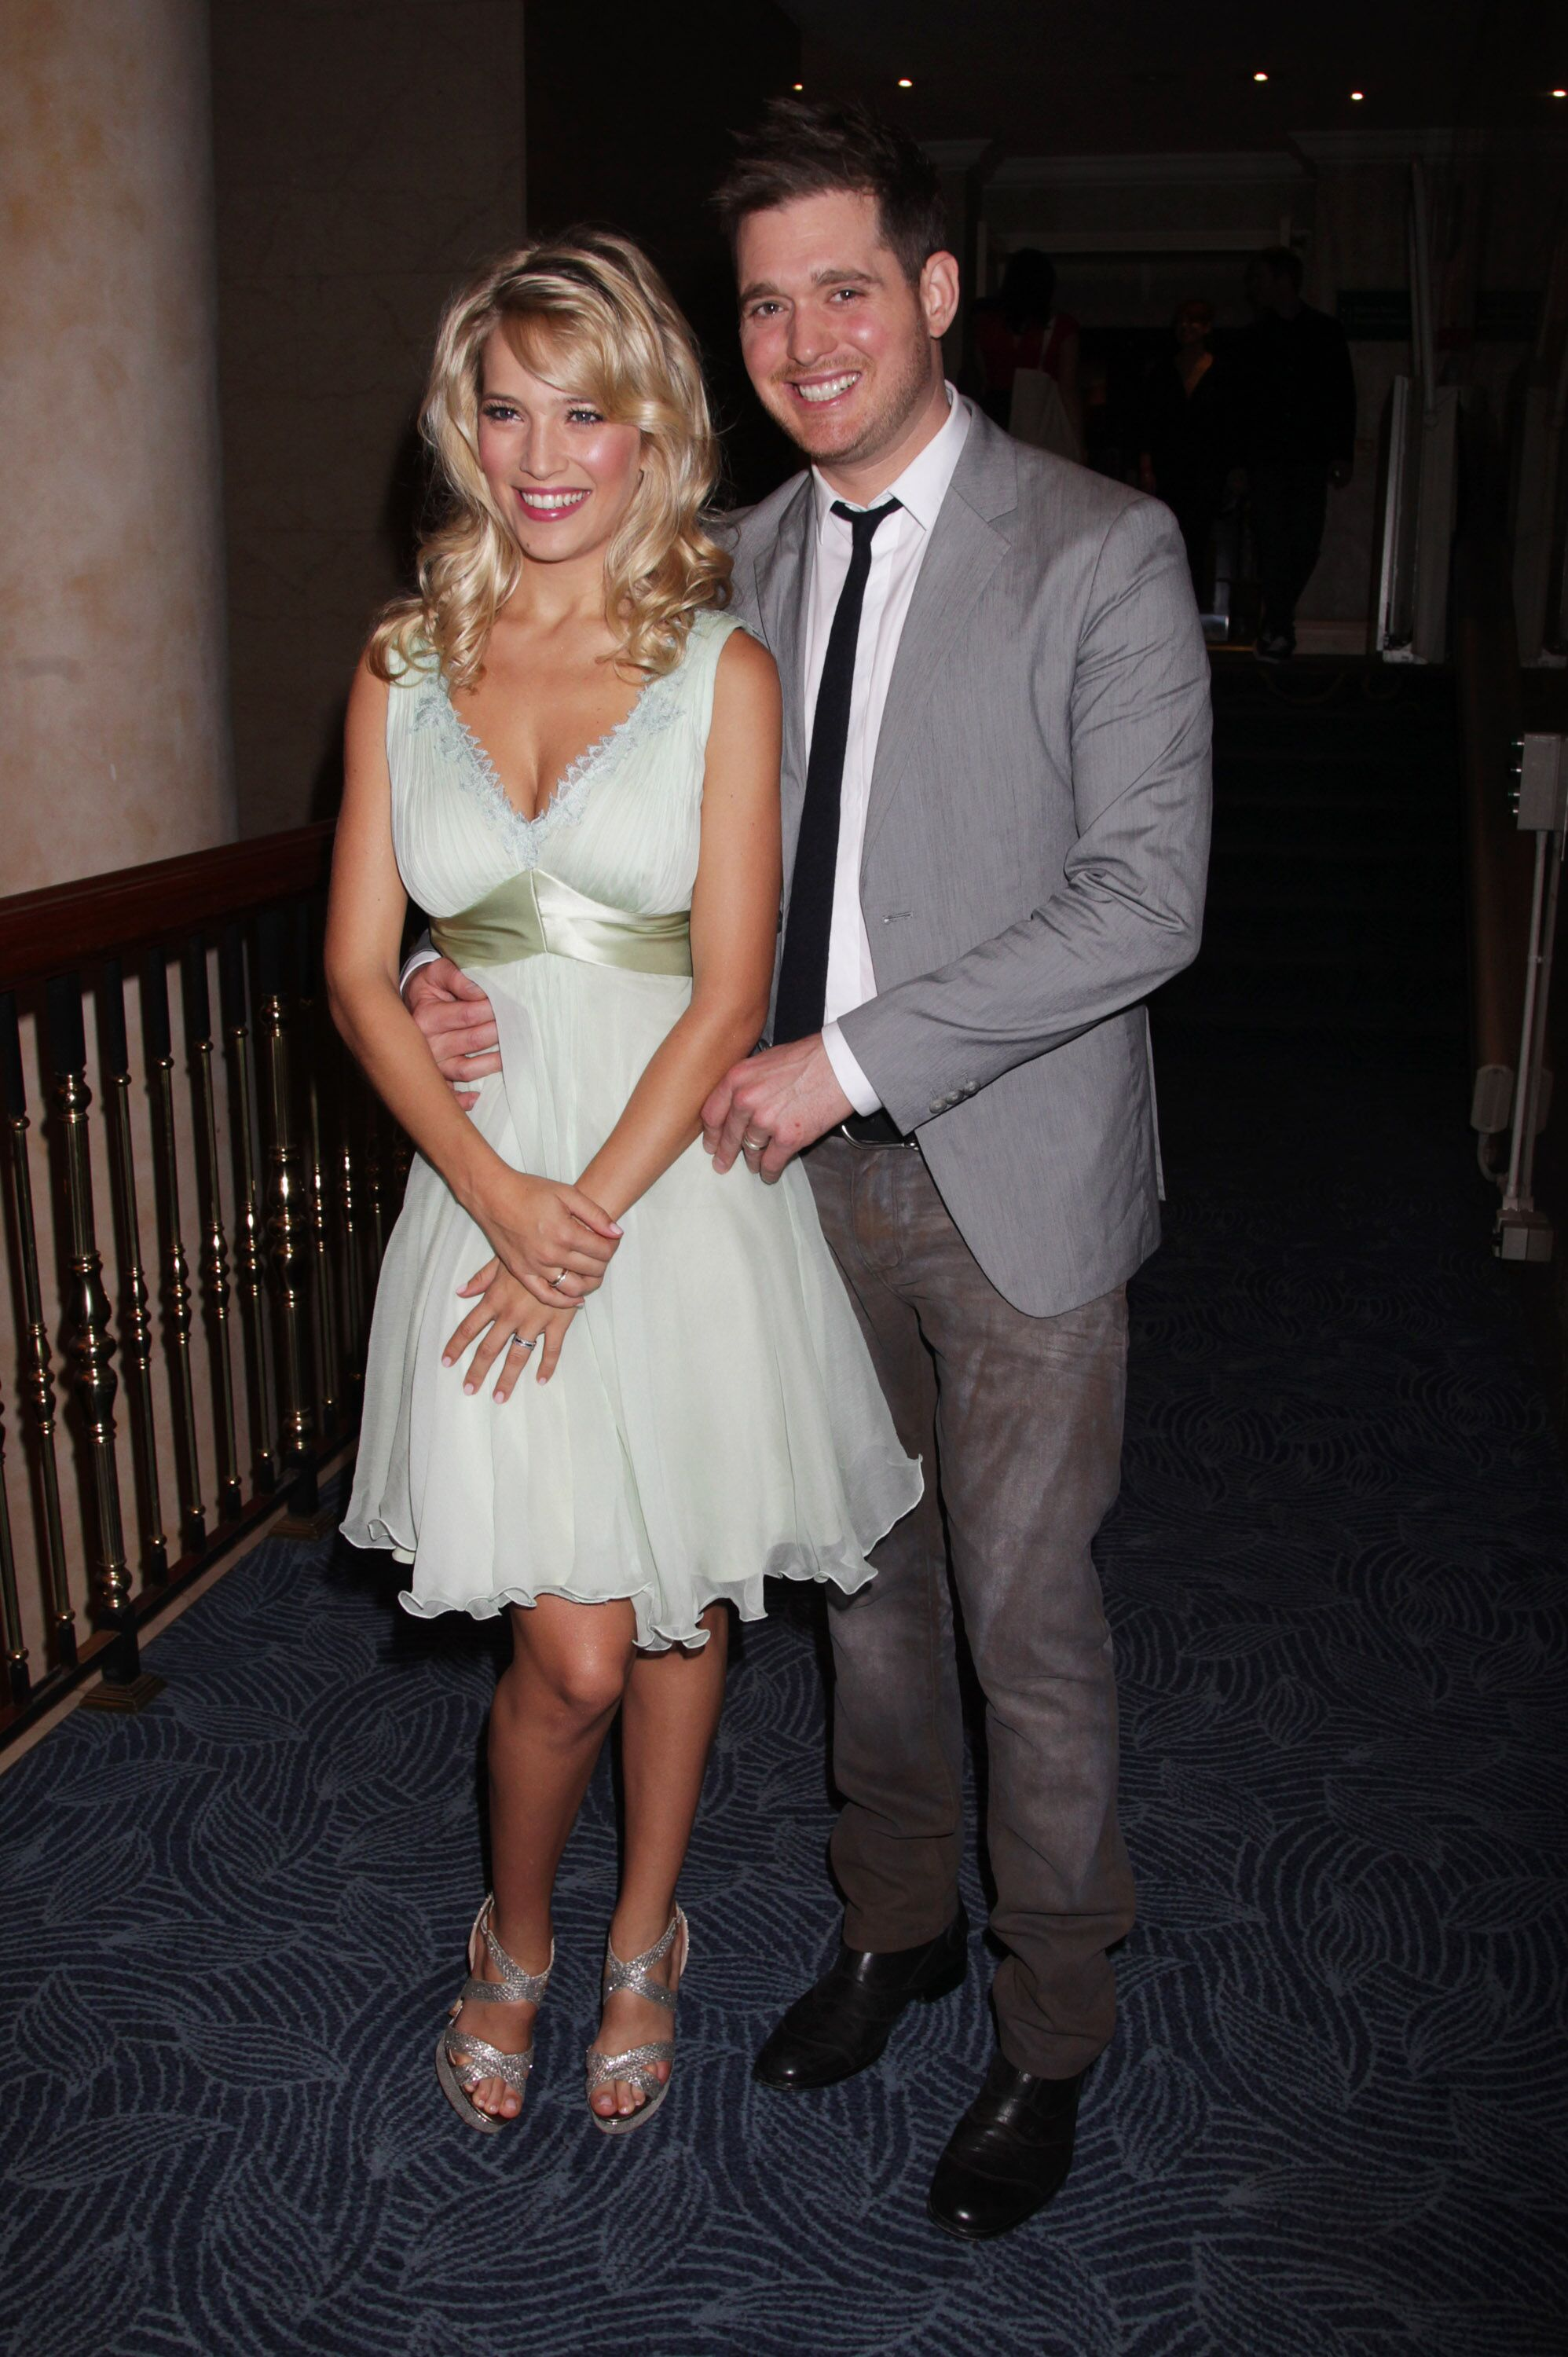 Nordoff Robbins O² Silver Clef Awards - Inside Arrivals LONDON, ENGLAND - JUNE 29: Luisana Lopilato and Michael Buble attend The Nordoff Robbins O¦ Silver Clef Awards 2012 at The Hilton Park Lane on June 29, 2012 in London, England. (Photo by Dave Hogan/Getty Images)